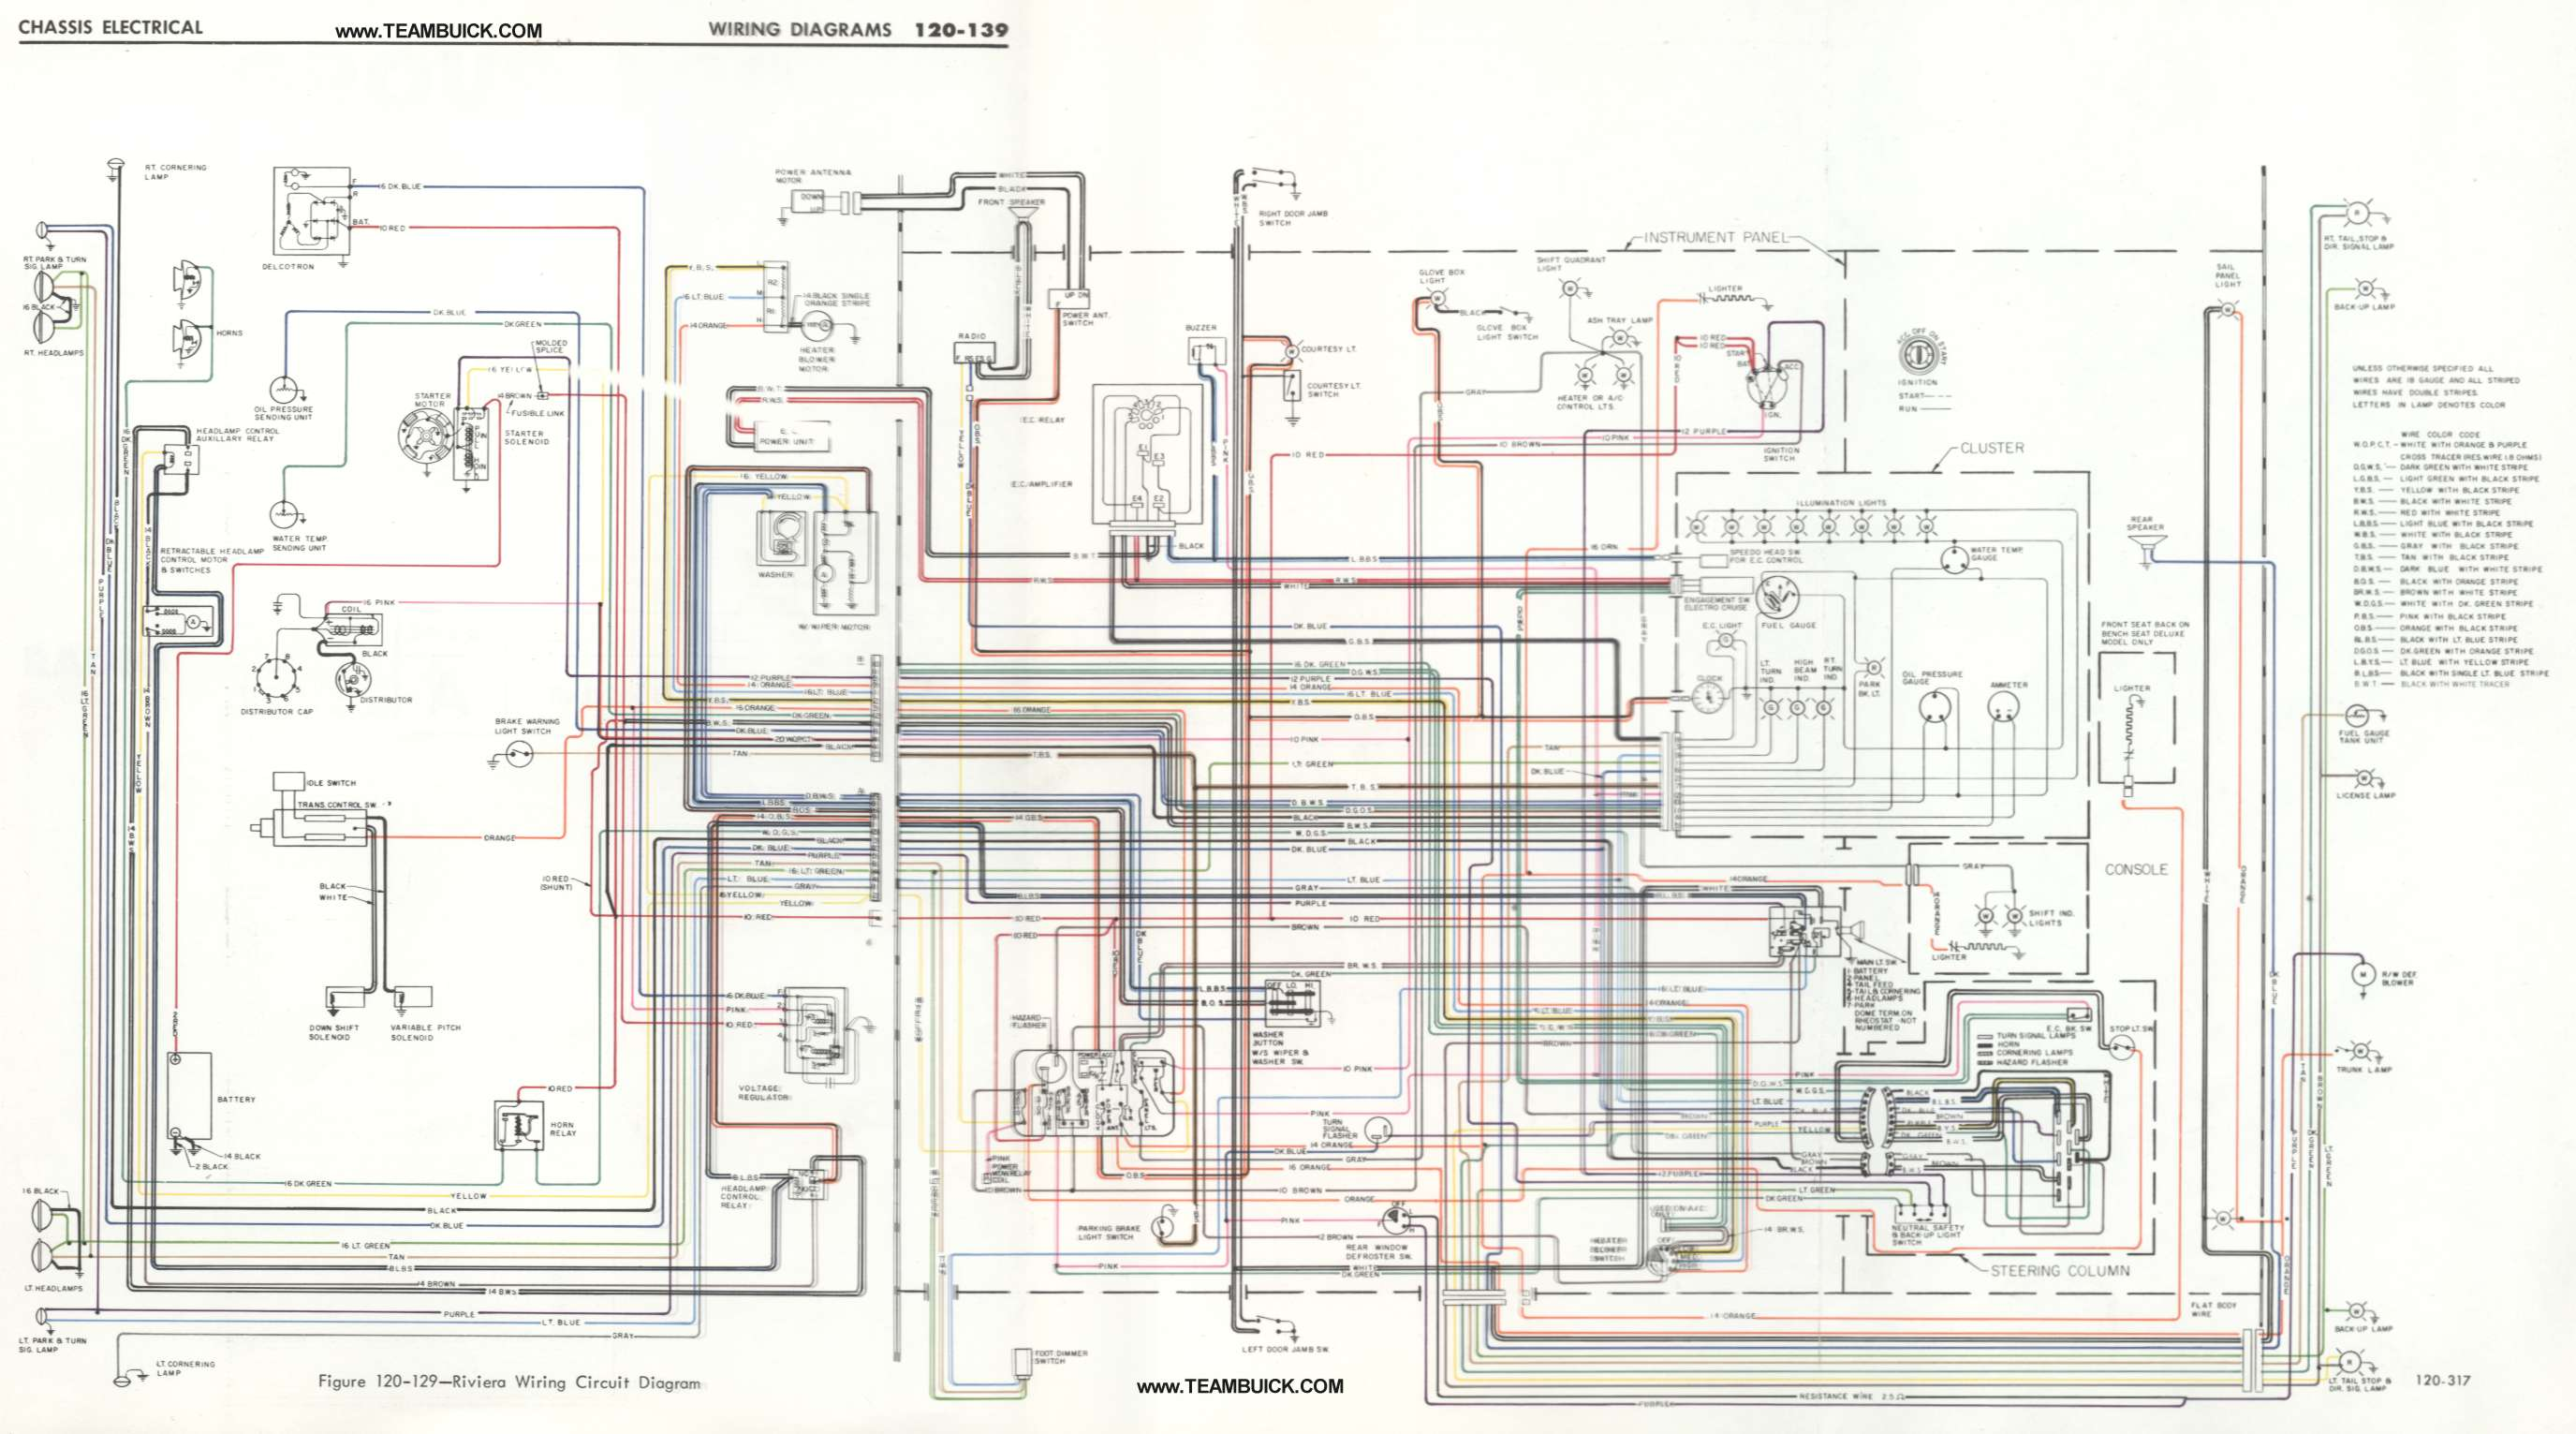 buick riviera wiring to battery diagram 96 buick riviera wiring schematic